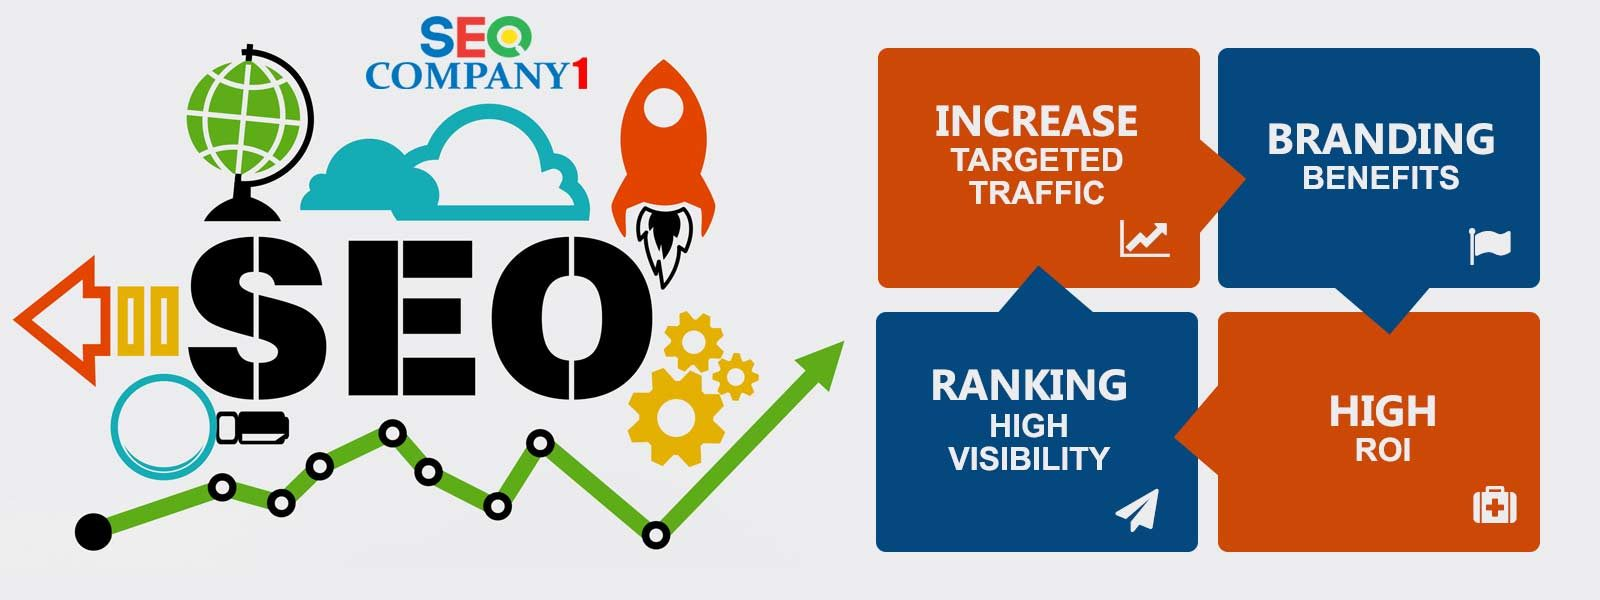 Best SEO Company- Top SEO Services Agency of India